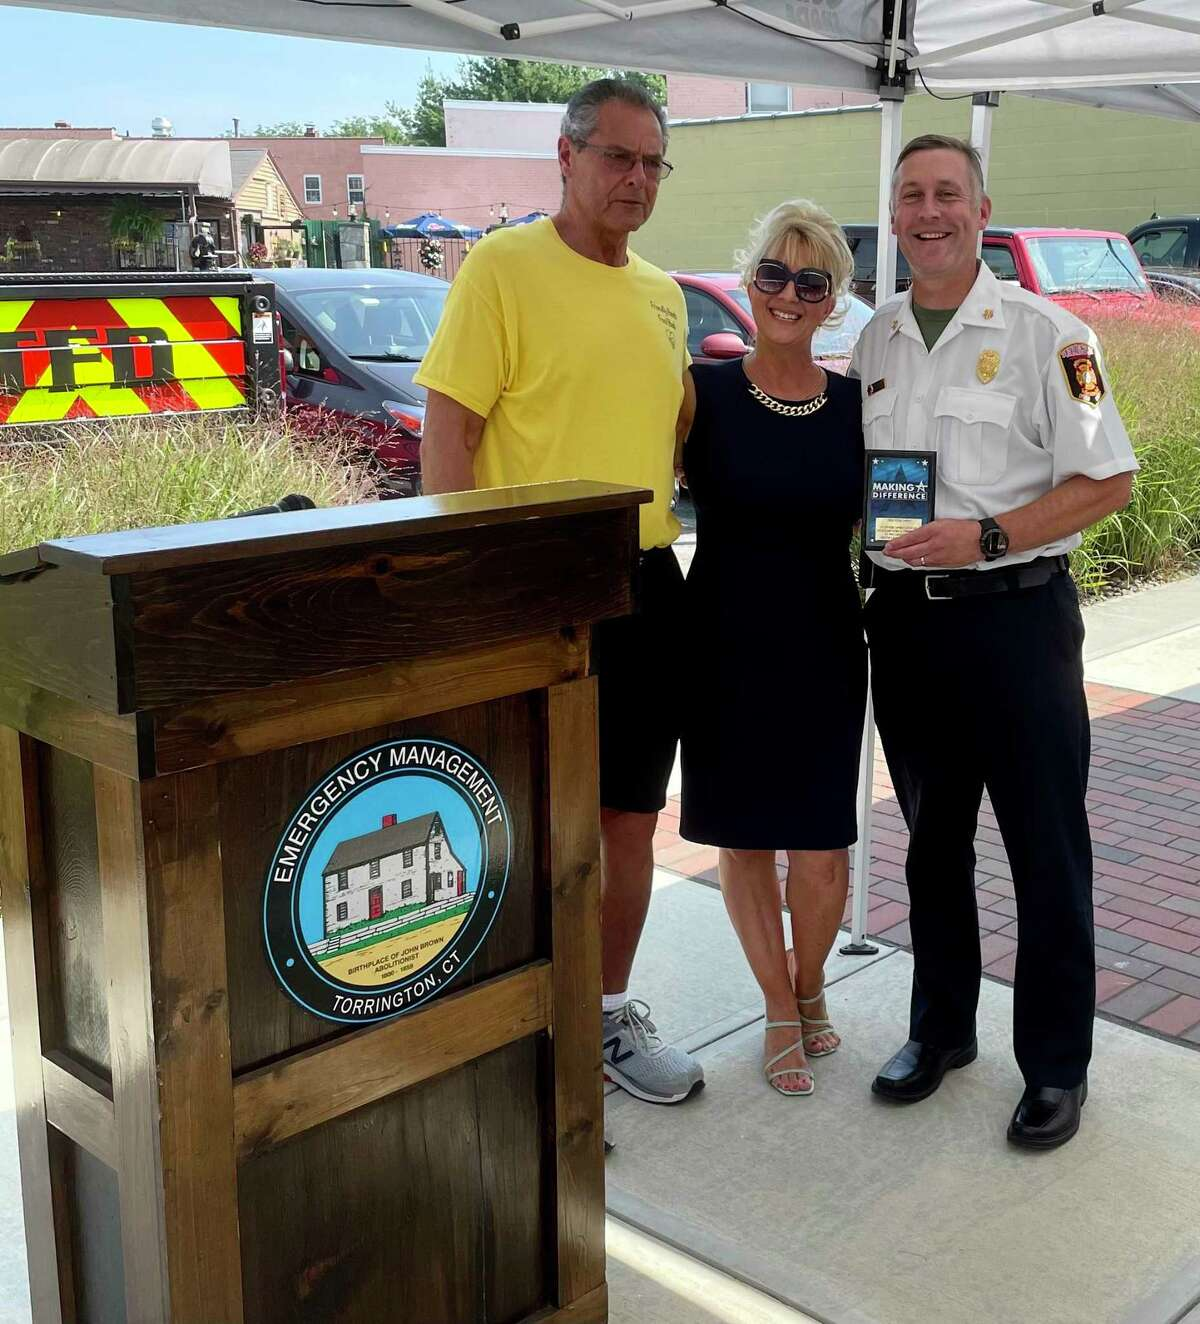 Friendly Hands Food Bank presented outgoing Torringotn Fire Chief Peter Towey with a plaque for his leadership in assisting the food bank with the Farmers to Families Free Food Box Program. The presentatino was made Aug. 13. Food bank board president Danny Hartnett, left, and executive director Karen Thomas, center. presented the plaque to Towey.